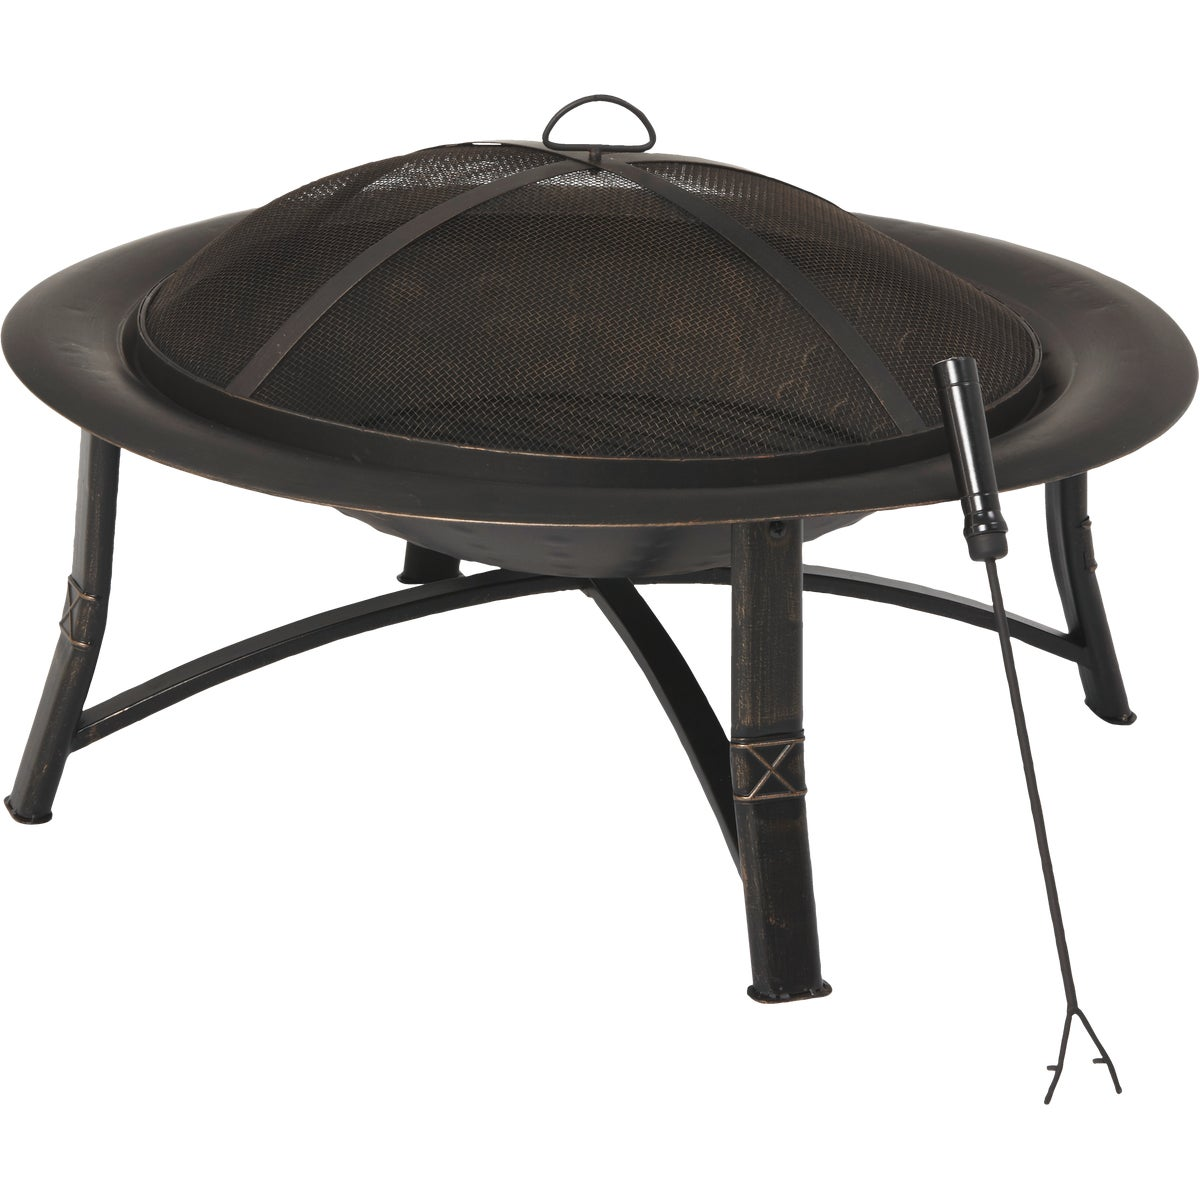 "35"" STEEL FIRE BOWL - FT-21039 by Do it Best"